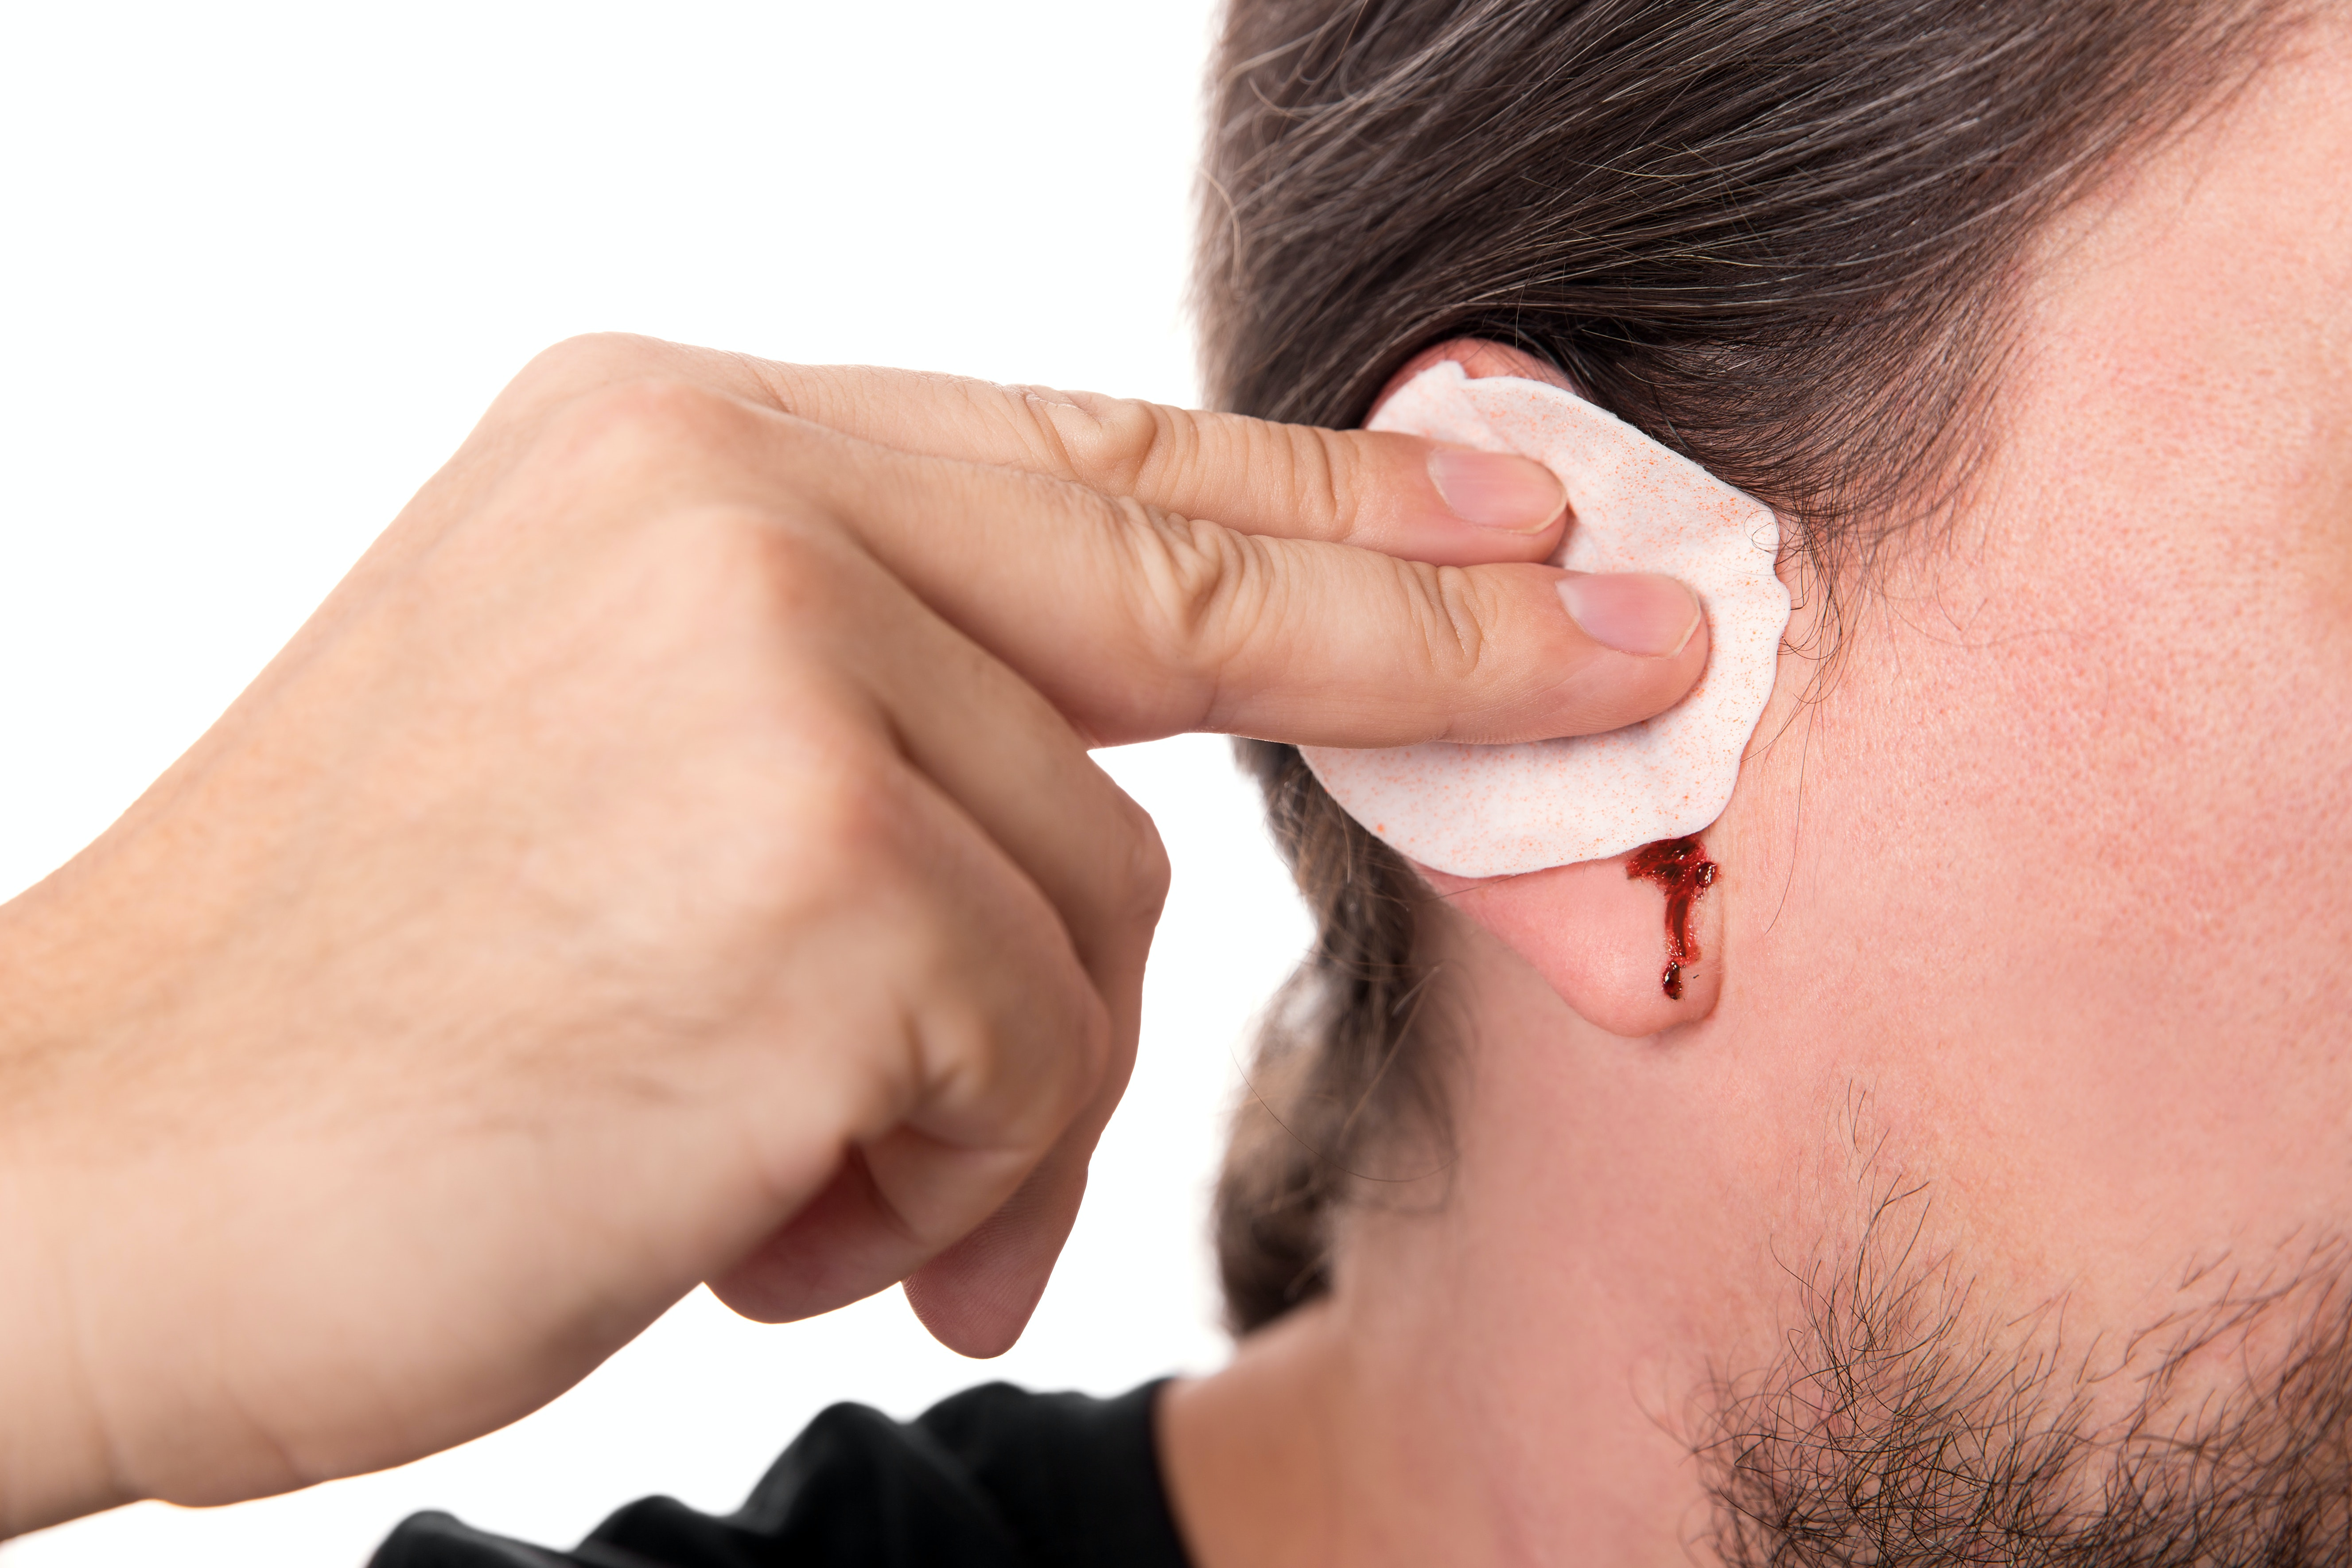 An image depicting a person suffering from bleeding from the ear symptoms